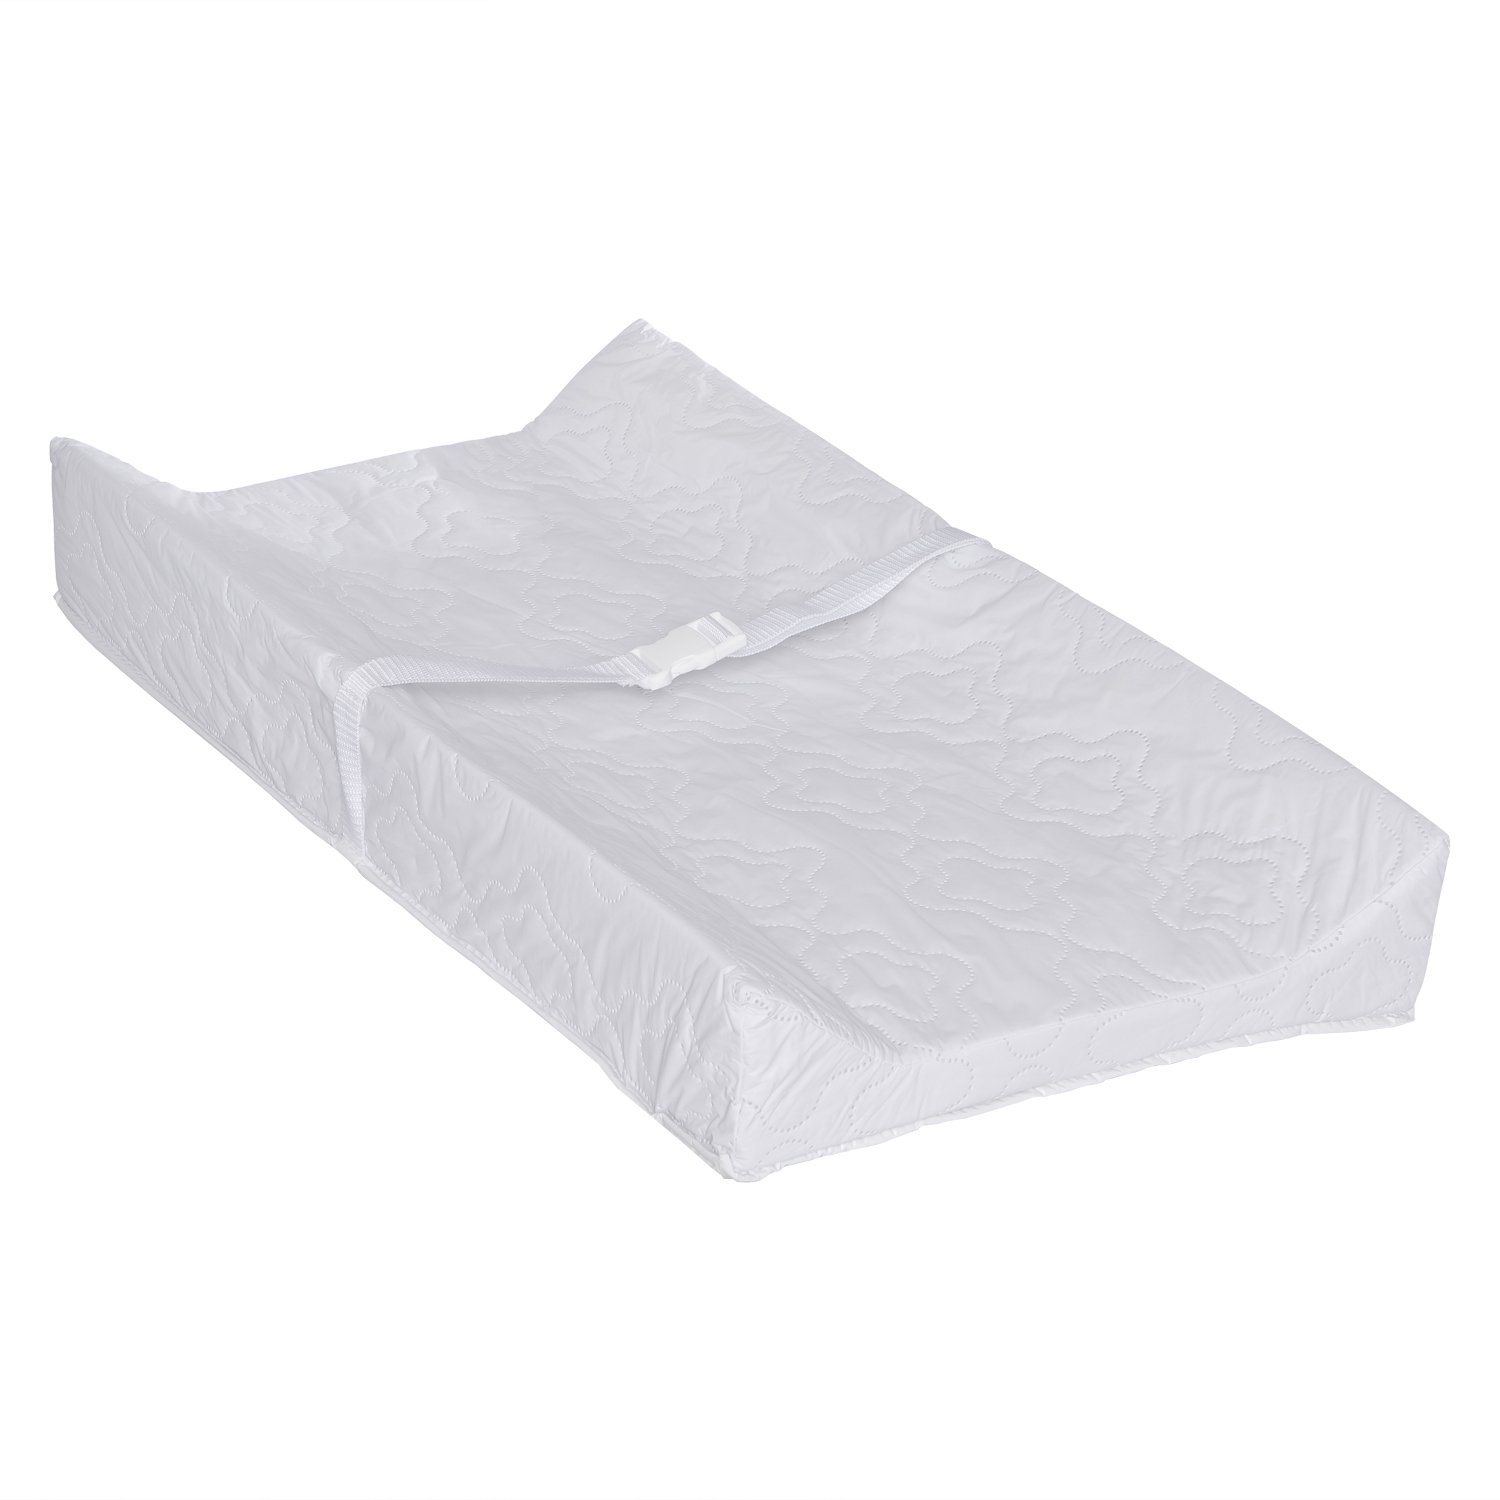 Dream On Me, Contour Changing Pad by Dream On Me